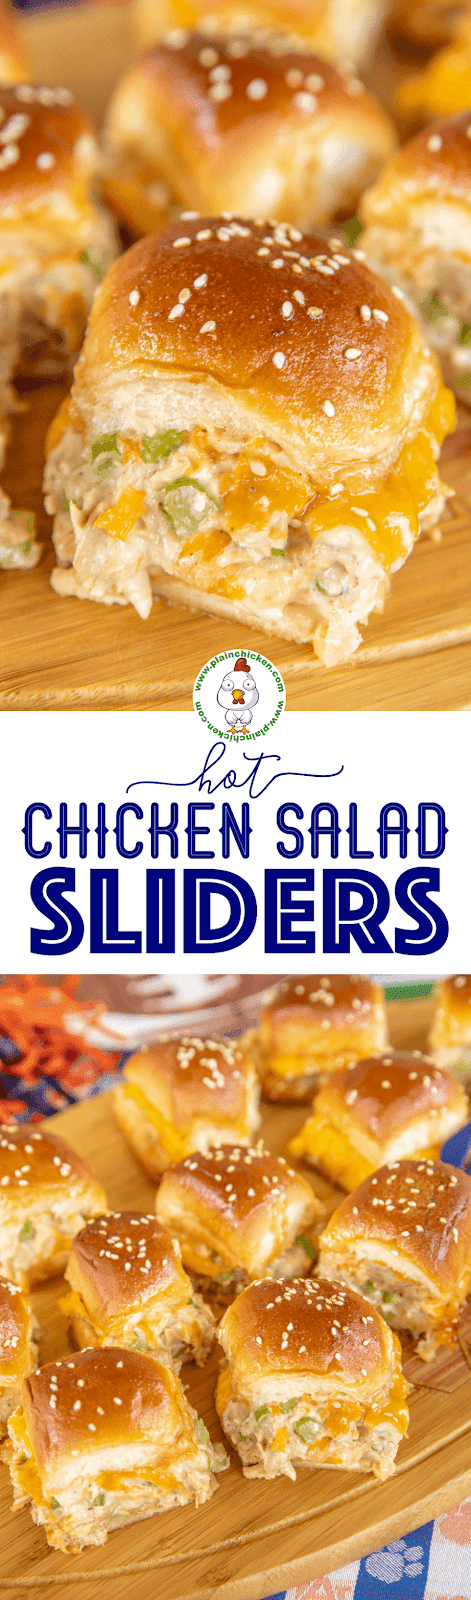 collage of 2 photos of chicken salad sliders